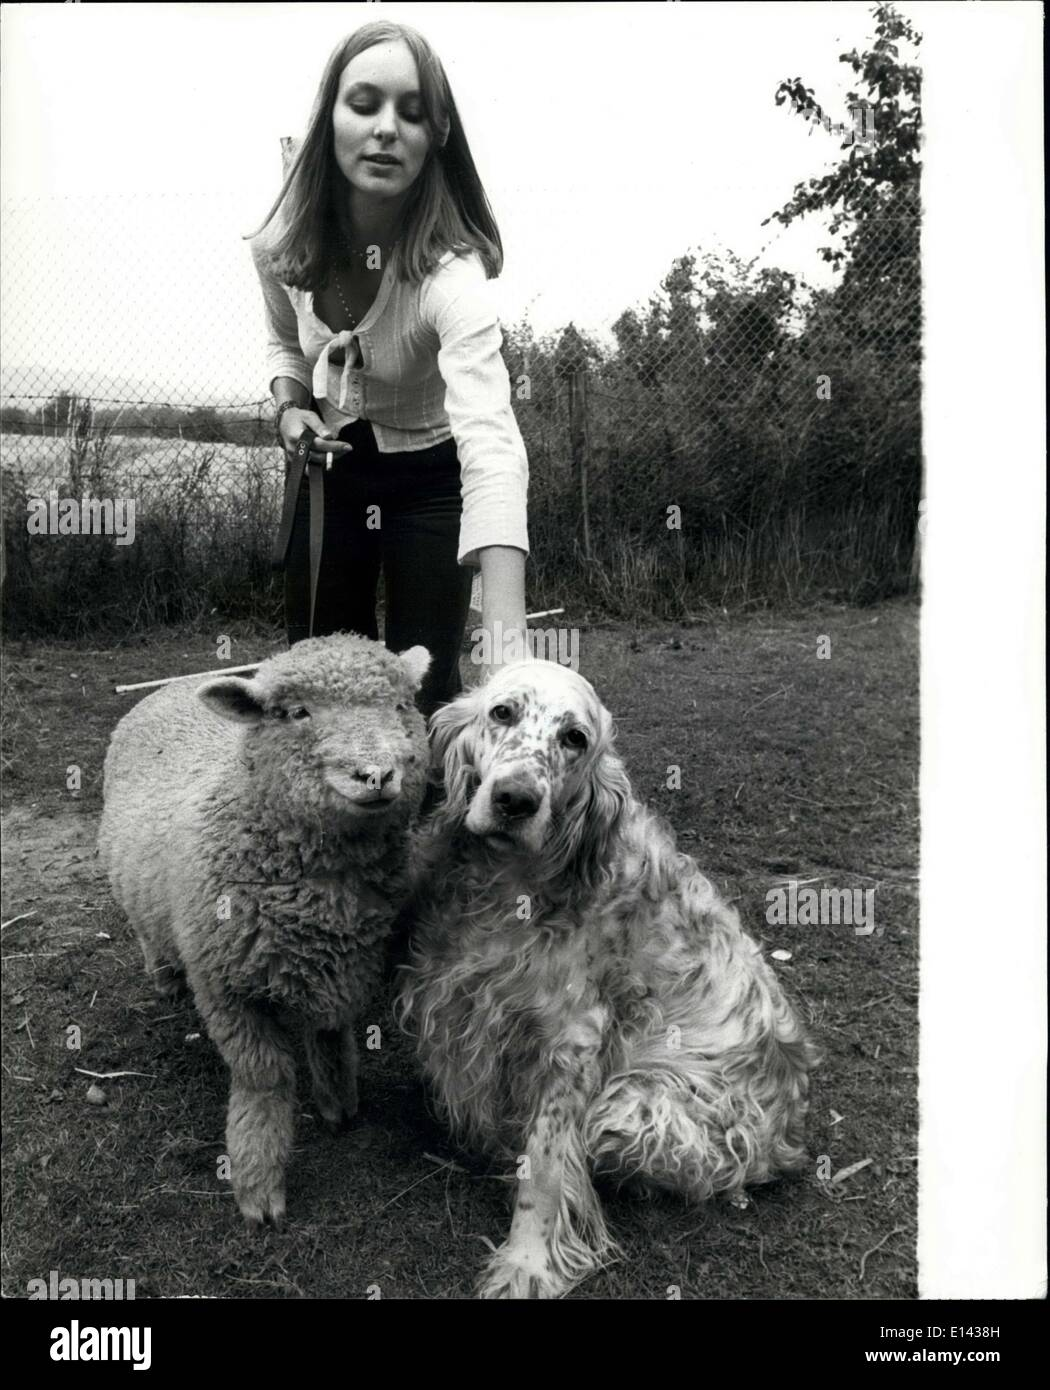 Mar. 31, 2012 - Carilyn had a little lamb: people may stare, but Carilyn oddy of otford, Kent, doesn't think it's unusual to take her pet sheep, Victoria, out for walks along with her dog star. Neither do star or Victoria. They get on famously, and even travel with the 19-year-old teacher training student by car. - Stock Image